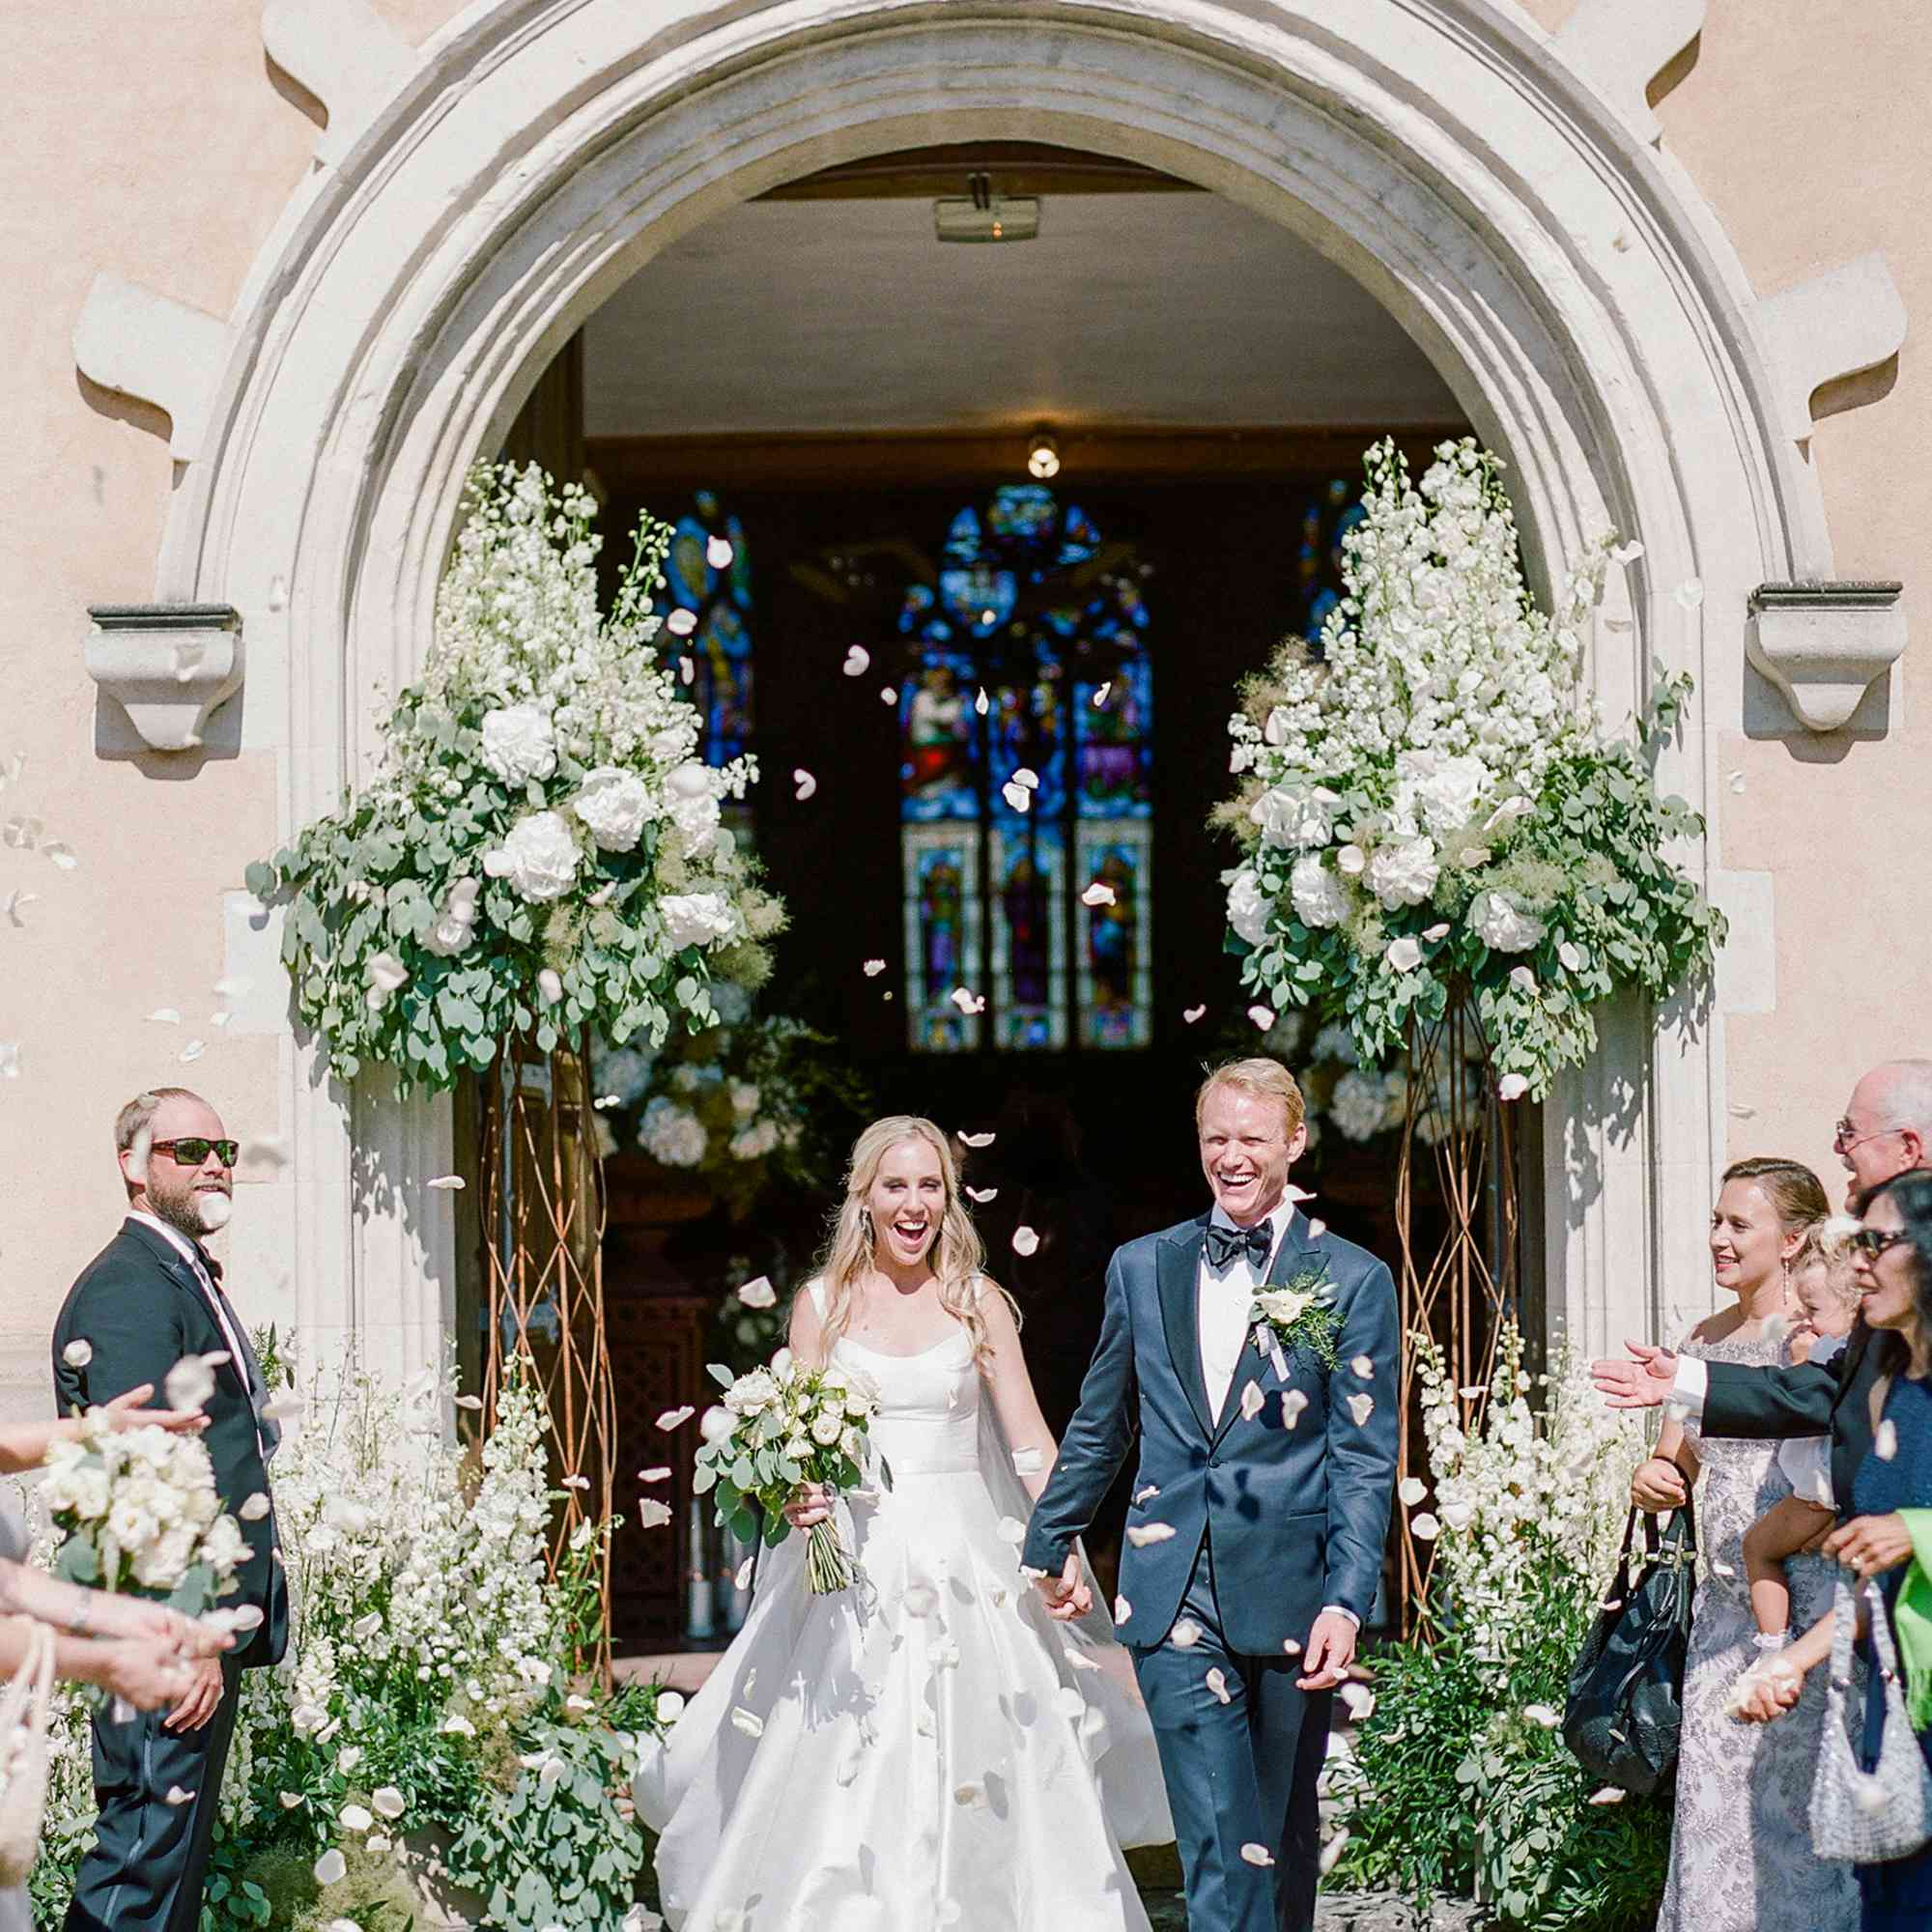 <p>Bride and groom leaving ceremony</p><br><br>